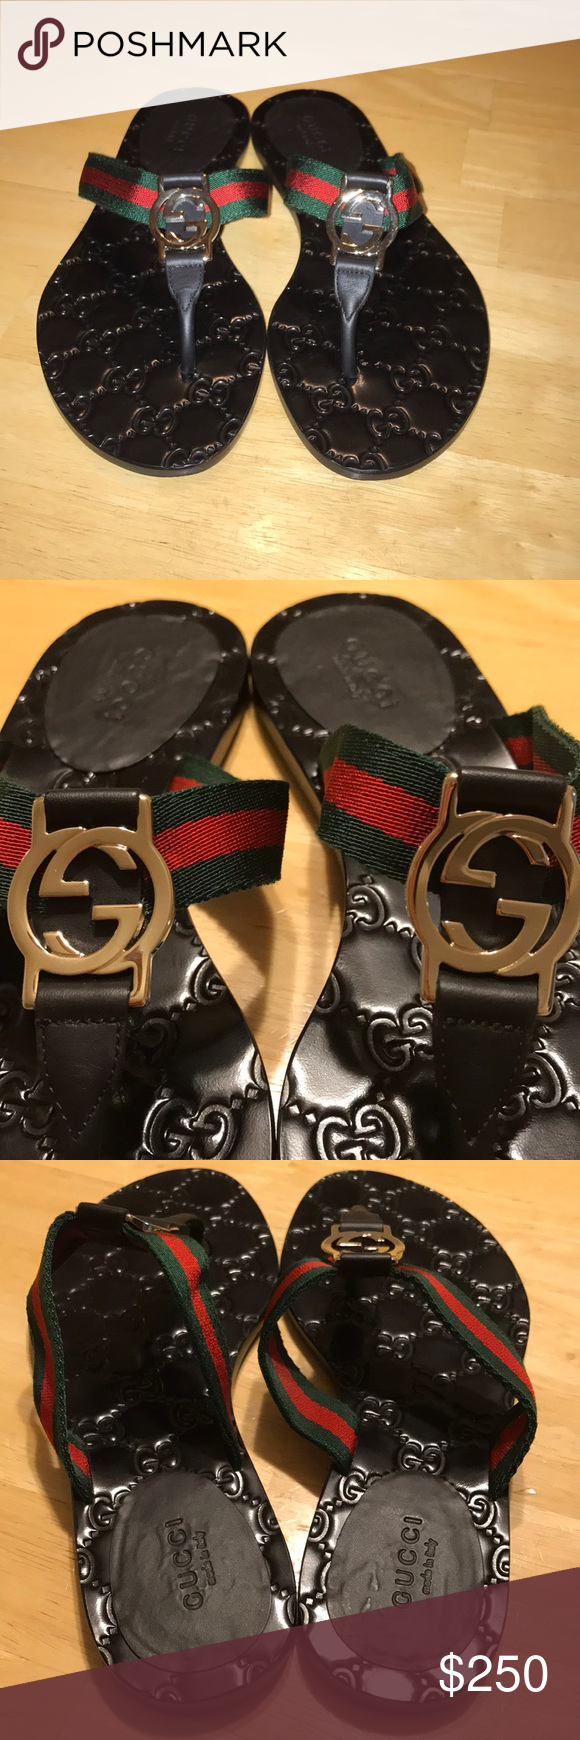 965483840 Gucci GG WEB THONG SANDALS GUCCI SIZE 35 Fit like women s 6 Know your GUCCI  SIZE